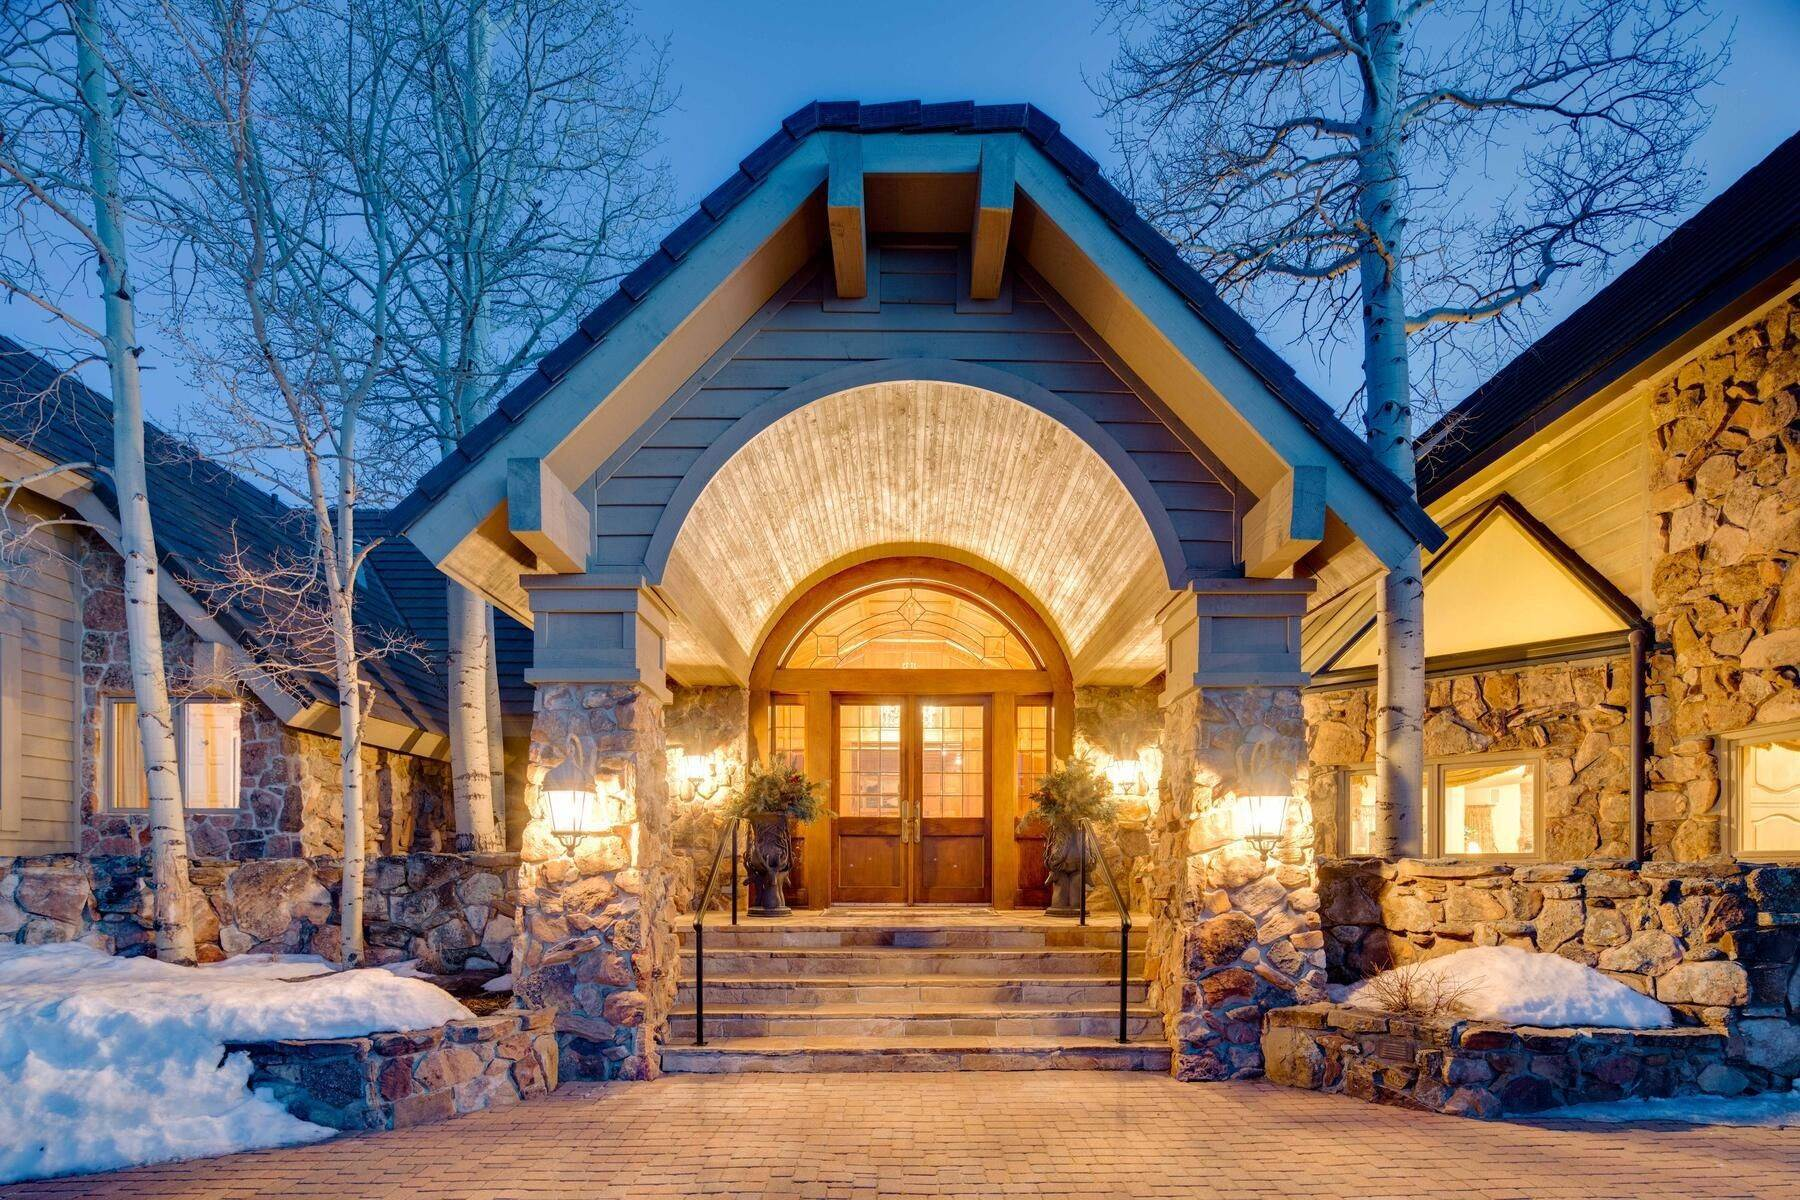 Single Family Homes for Active at Exquisite Architectural Masterpiece on 14 Idyllic Private Acres 1275 Silver Tip Lane Evergreen, Colorado 80439 United States